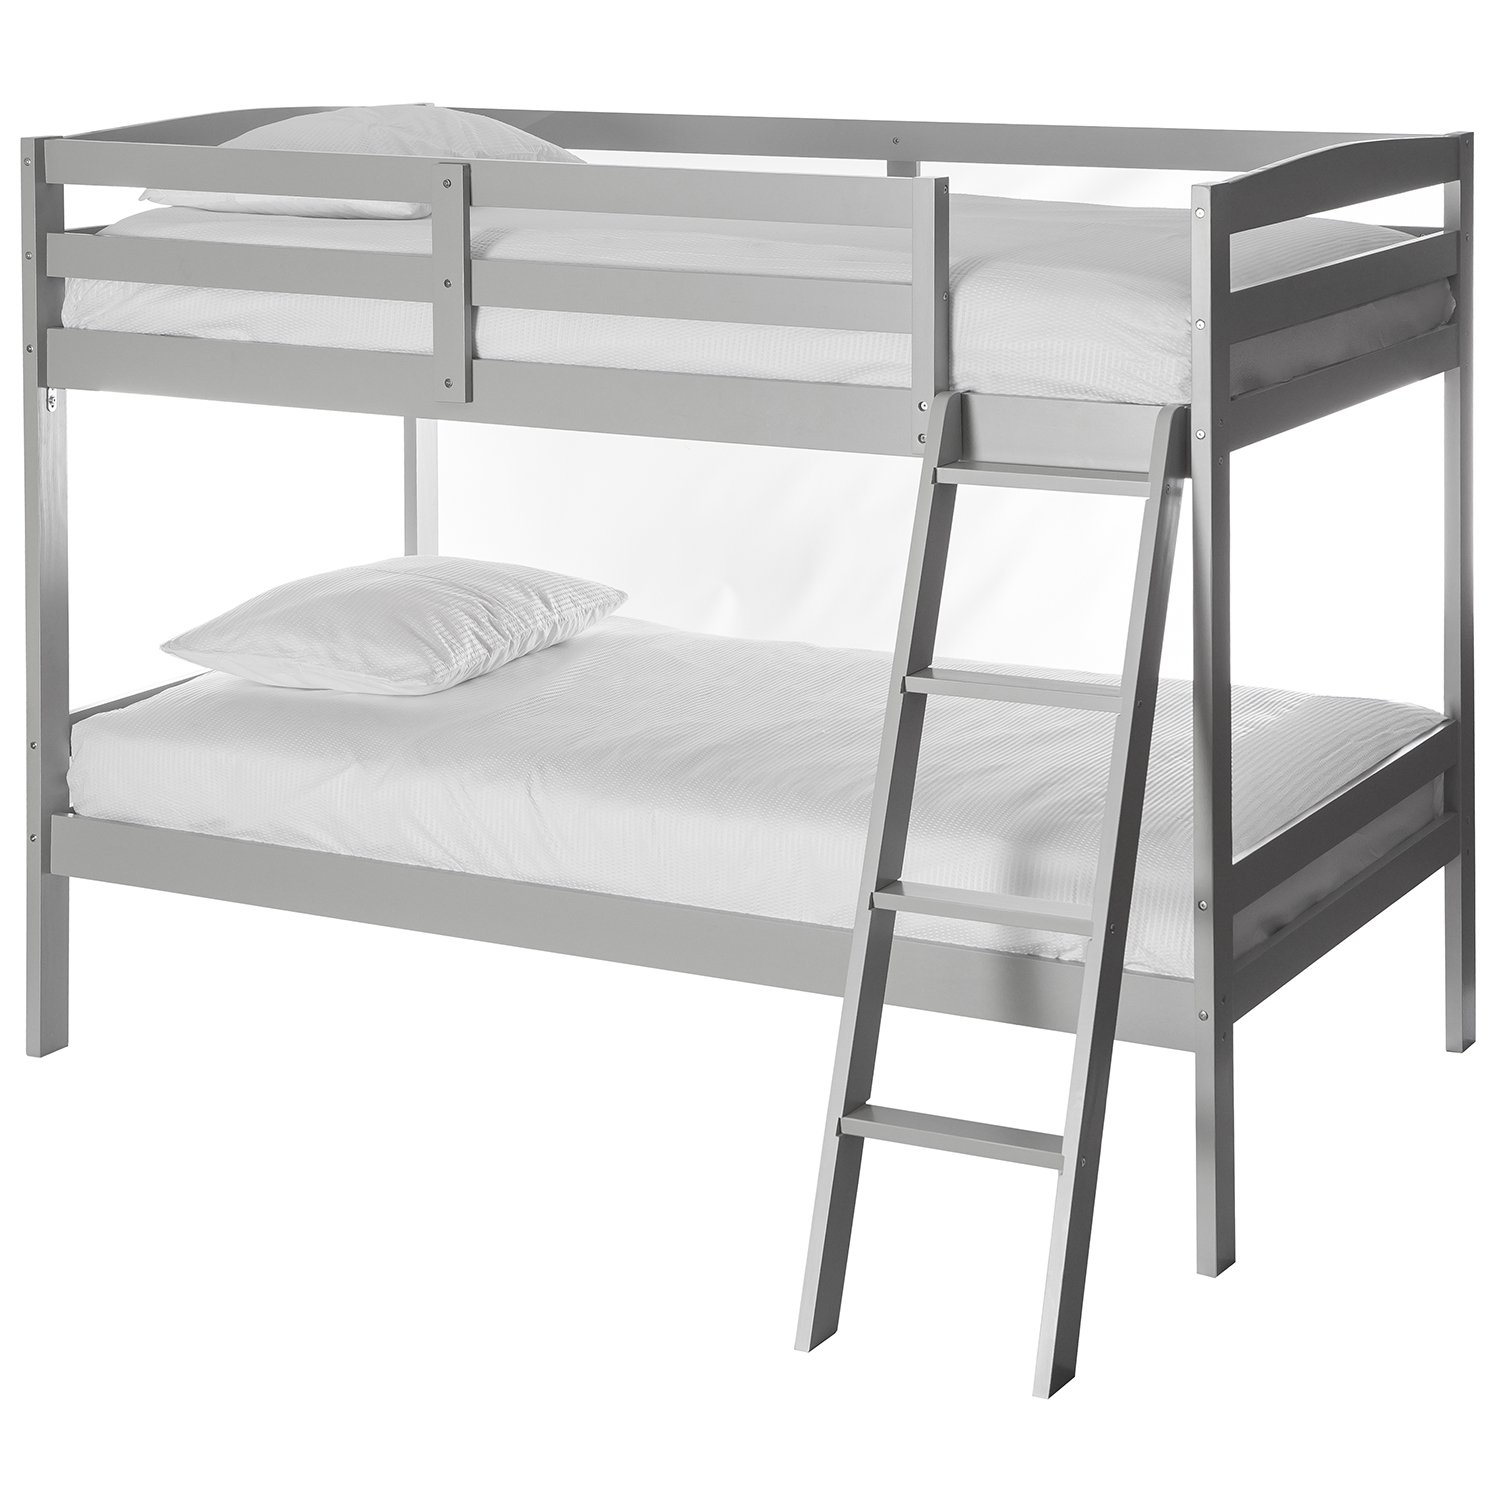 Dream On Me Taylor 2-in-1 Twin Over Bunk Bed, Gray, 99 Pound 708-G